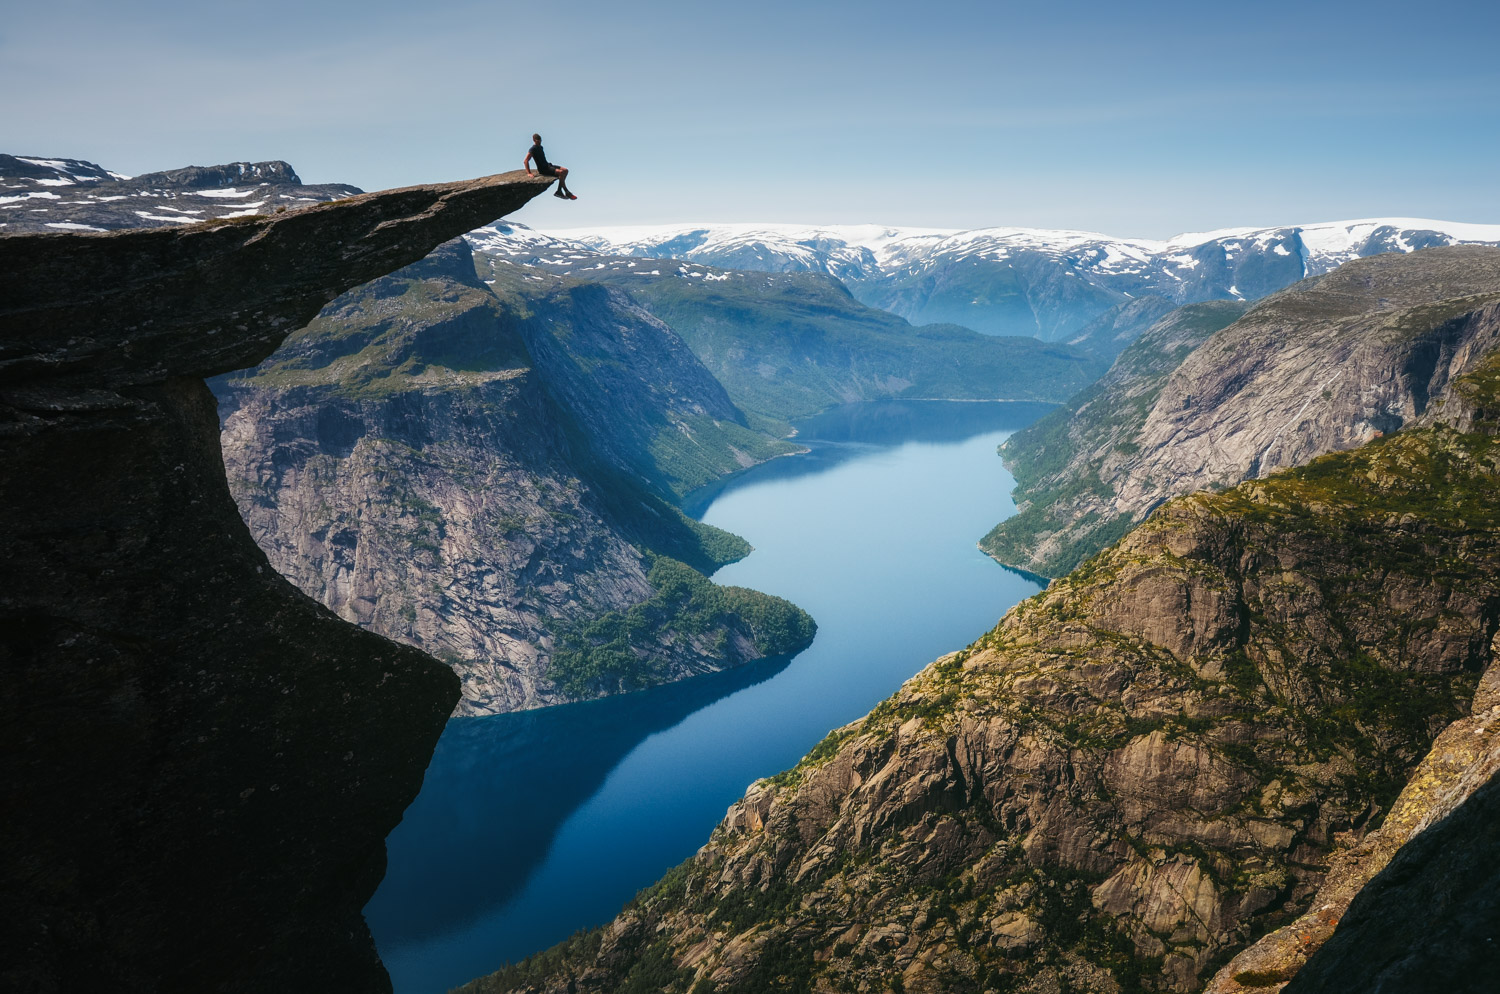 trolltunga_blog_tomas-havel-1.jpeg